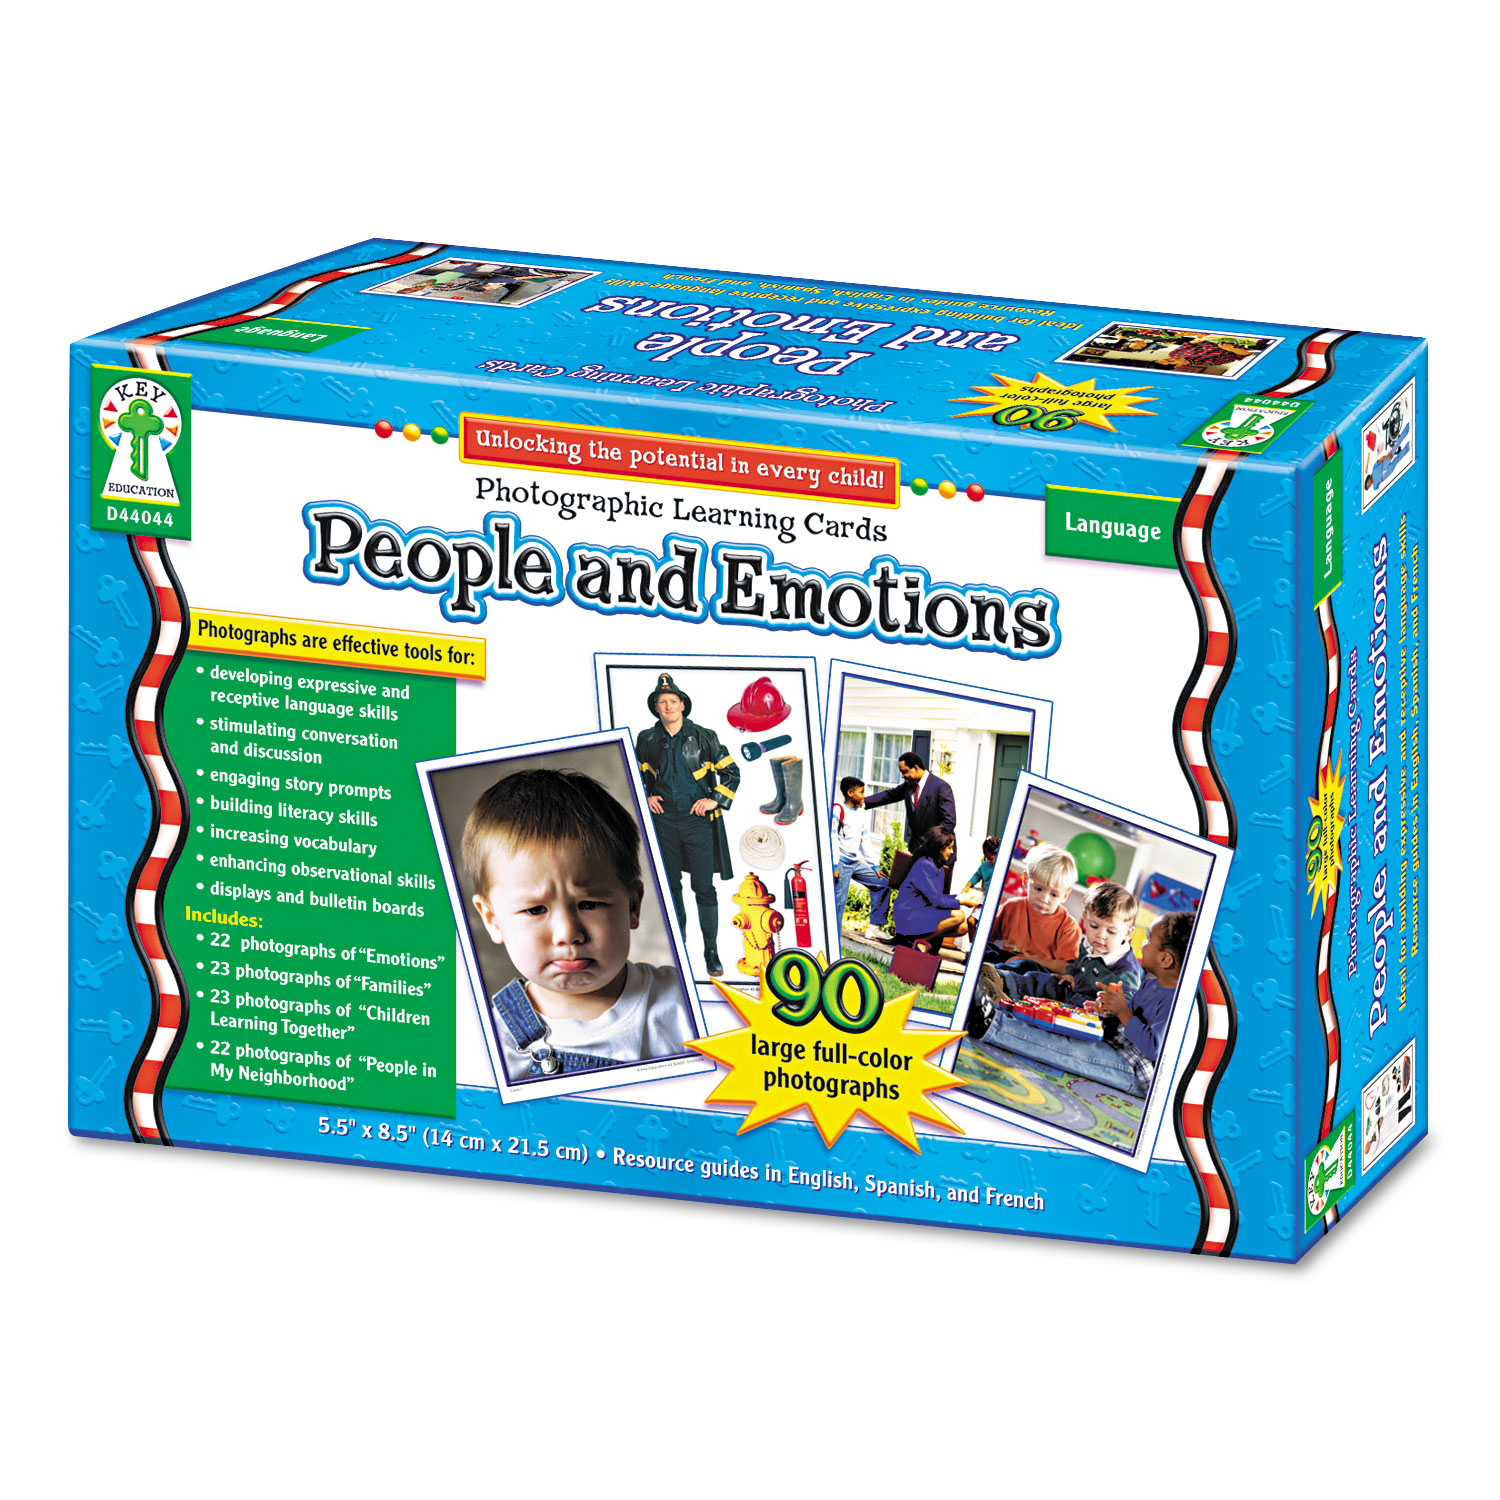 Photographic Learning Cards Boxed Set, People and Emotions, Grades K-5